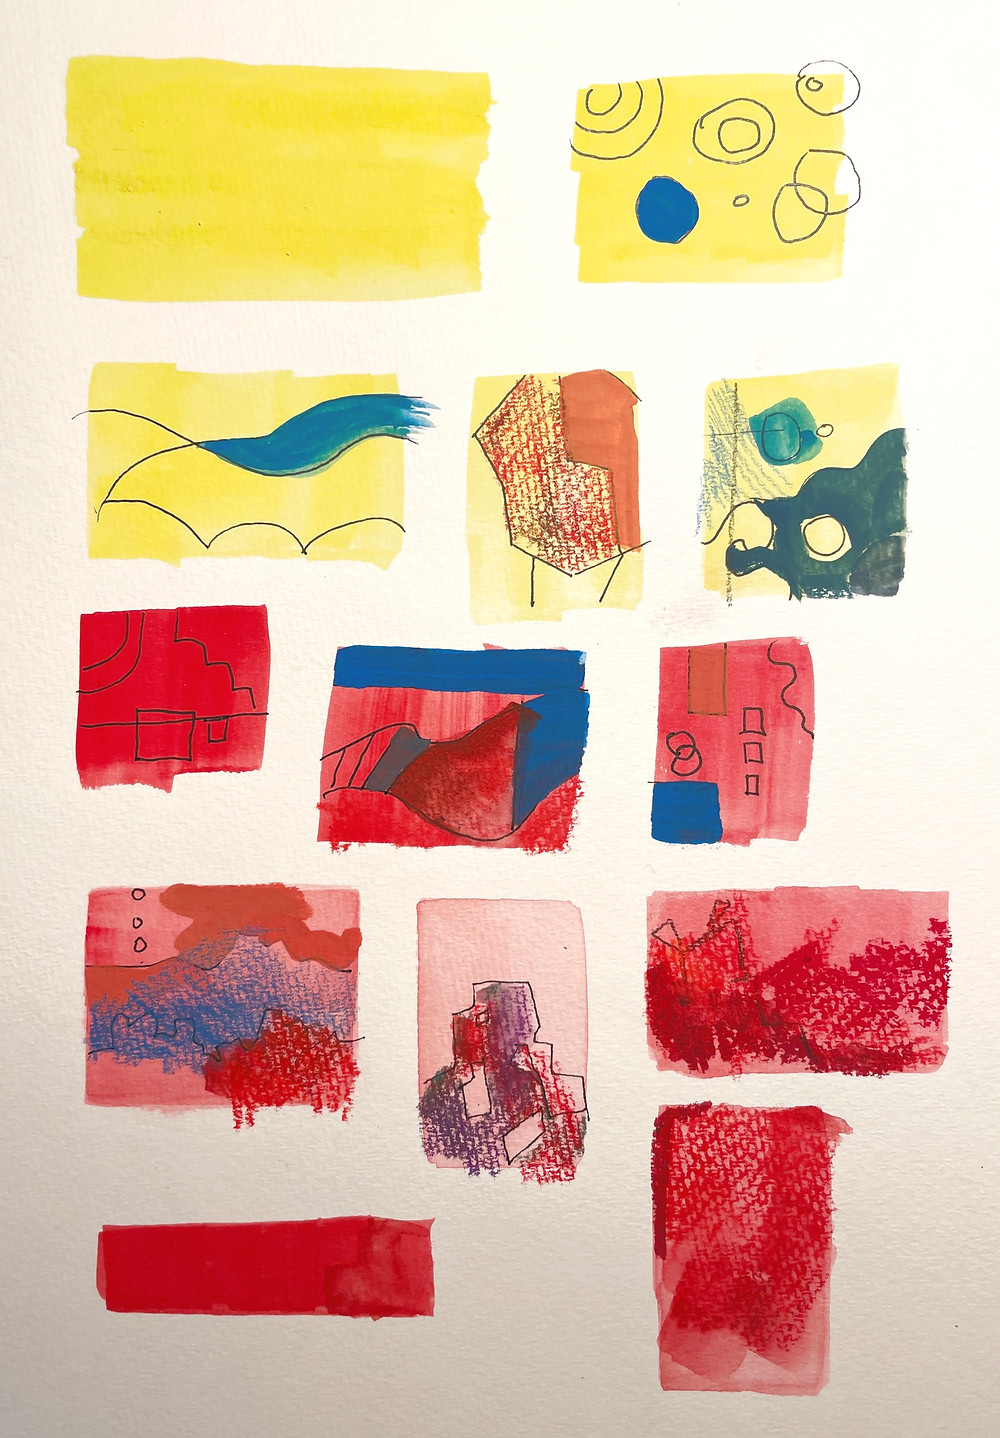 Thumbnail sketches in Yellow and Red Gouache